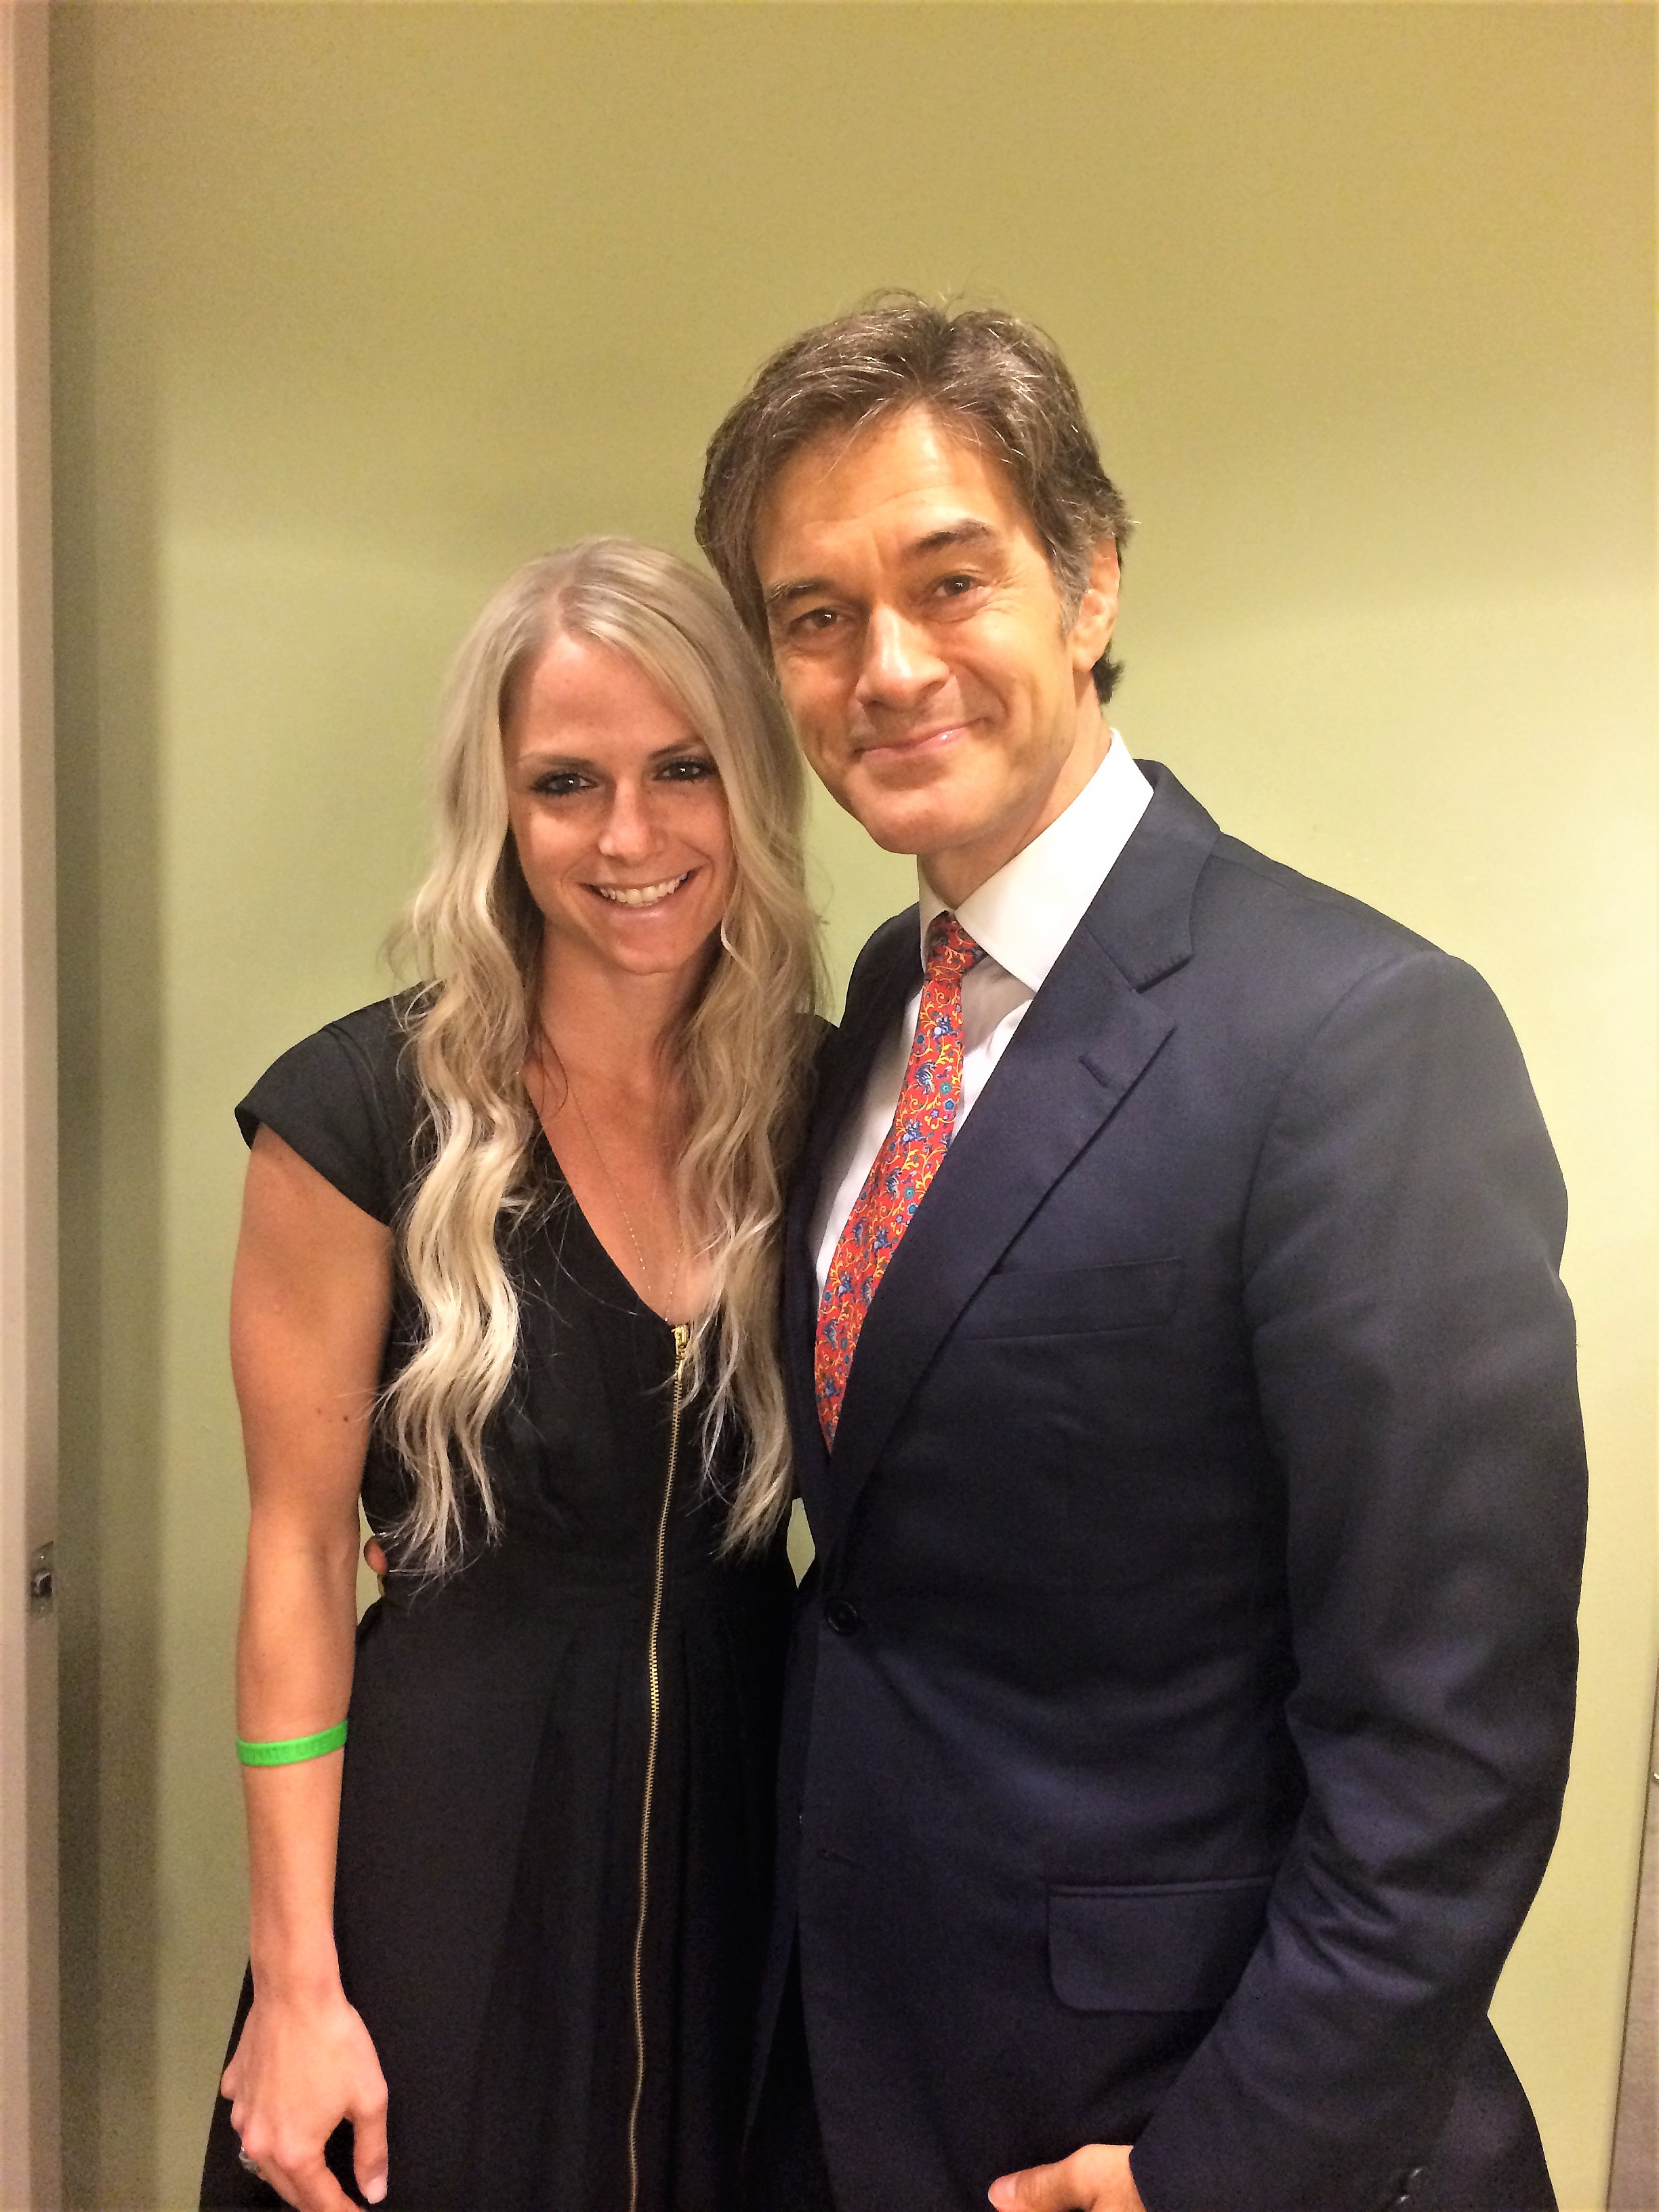 Mandy-with-Dr.-Oz-3 Mandy Lubrano Promoted to Vice President at All American Entertainment